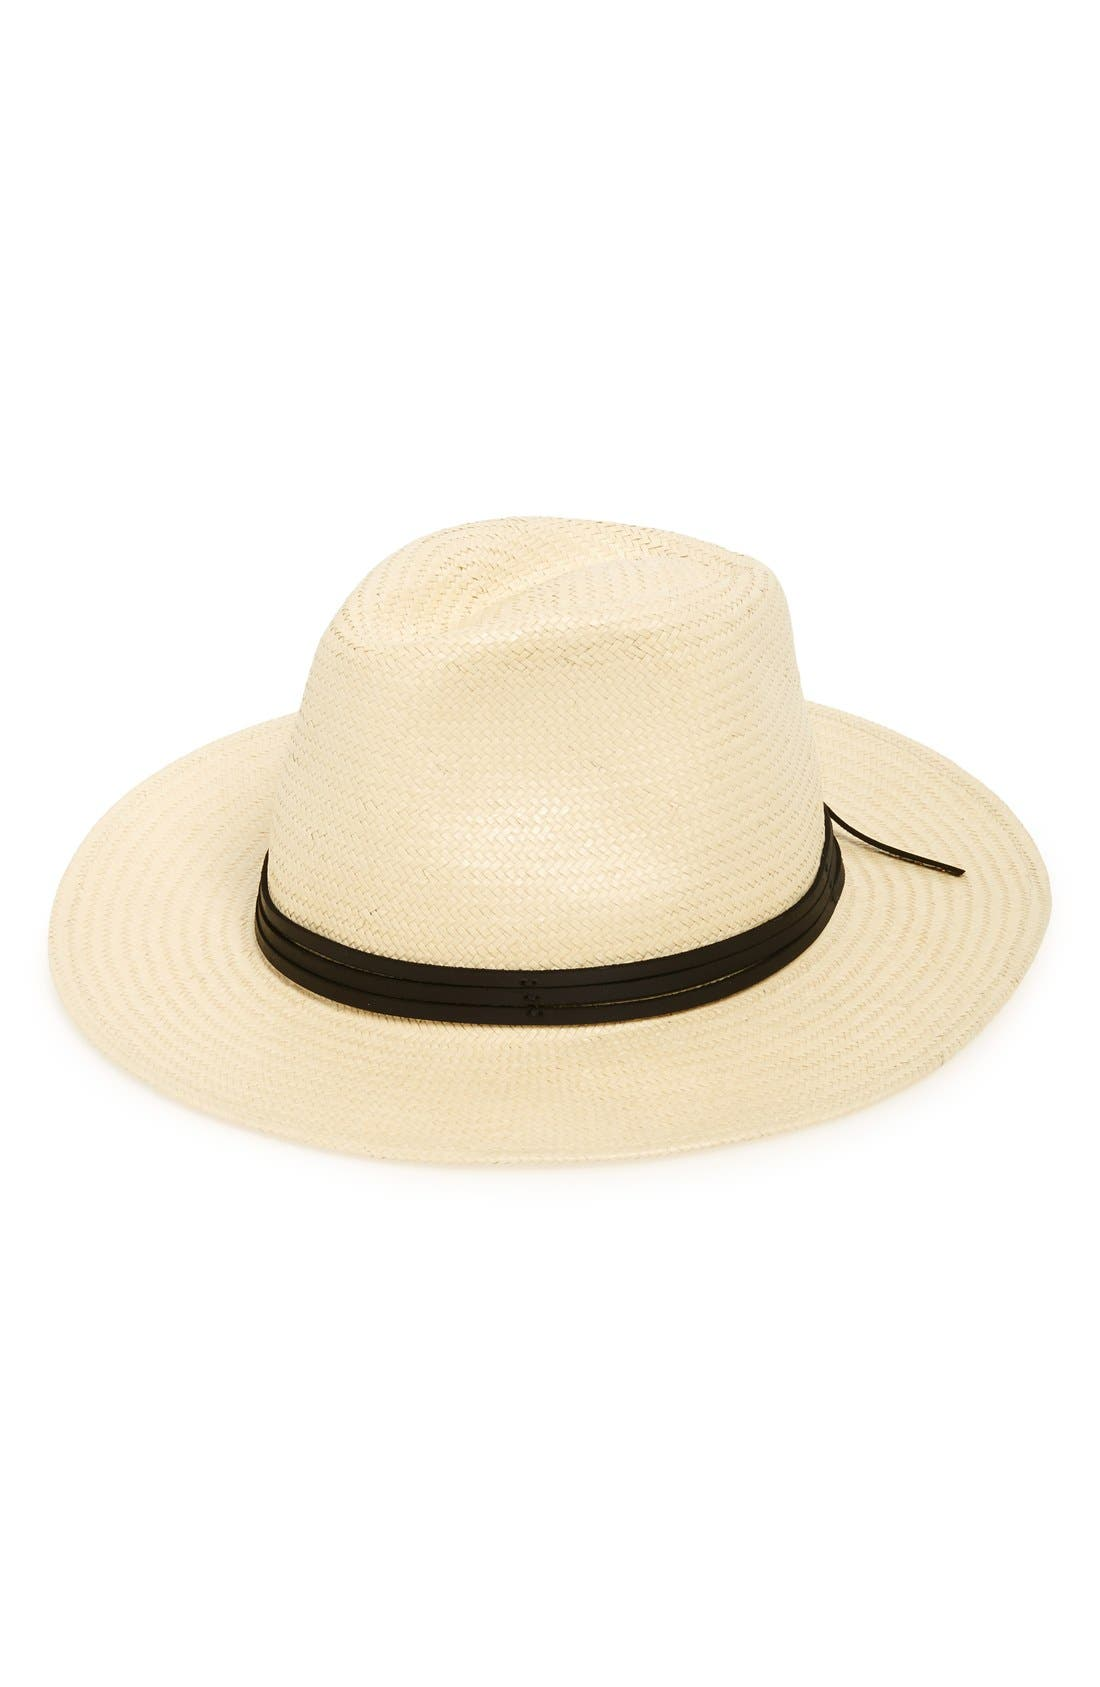 BRIXTON 'Pacific' Straw Fedora, Main, color, BEIGE